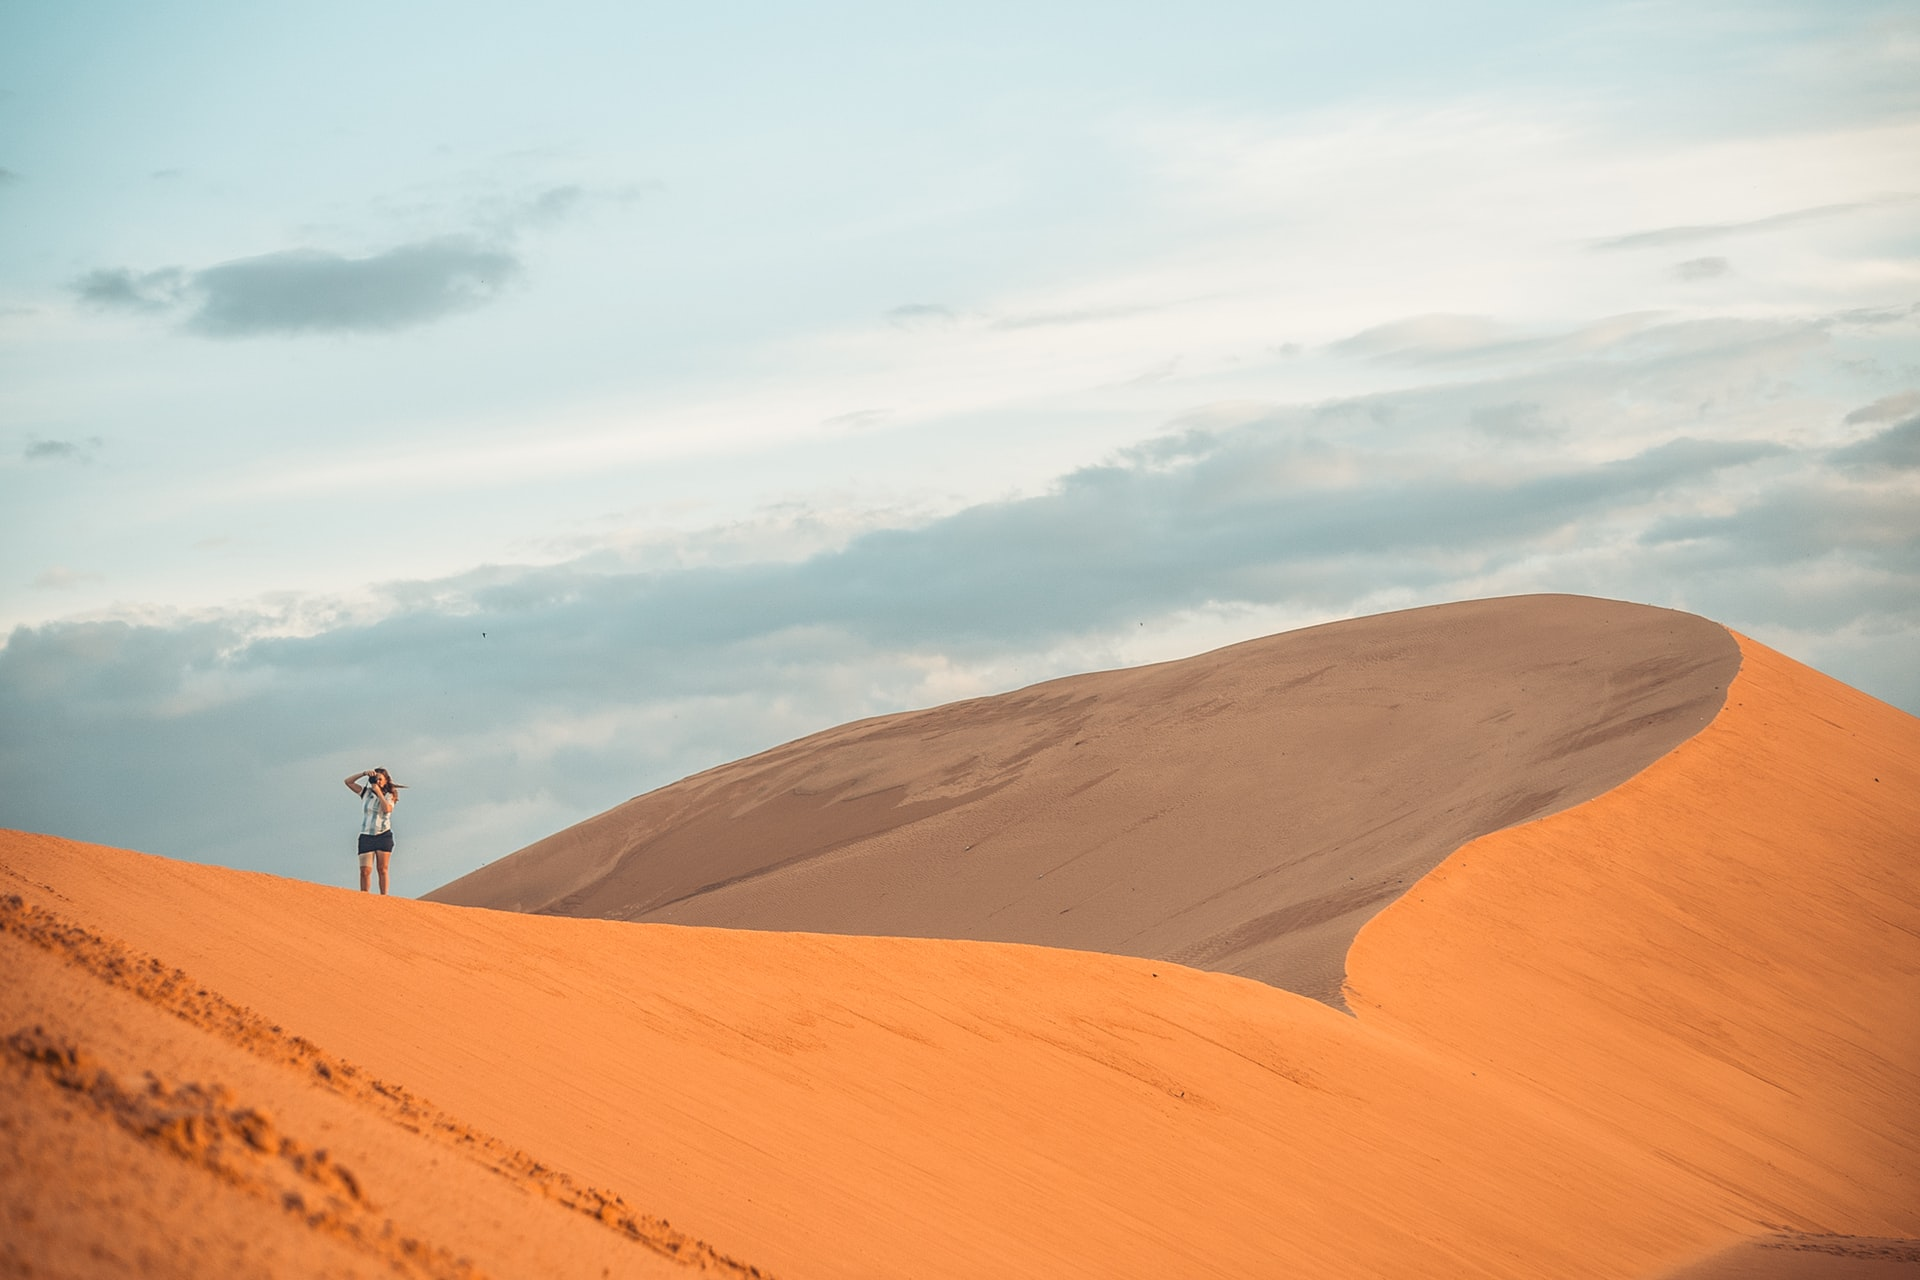 a view of the sand dunes in Mui Ne with one woman standing on the dunes, taking a picture